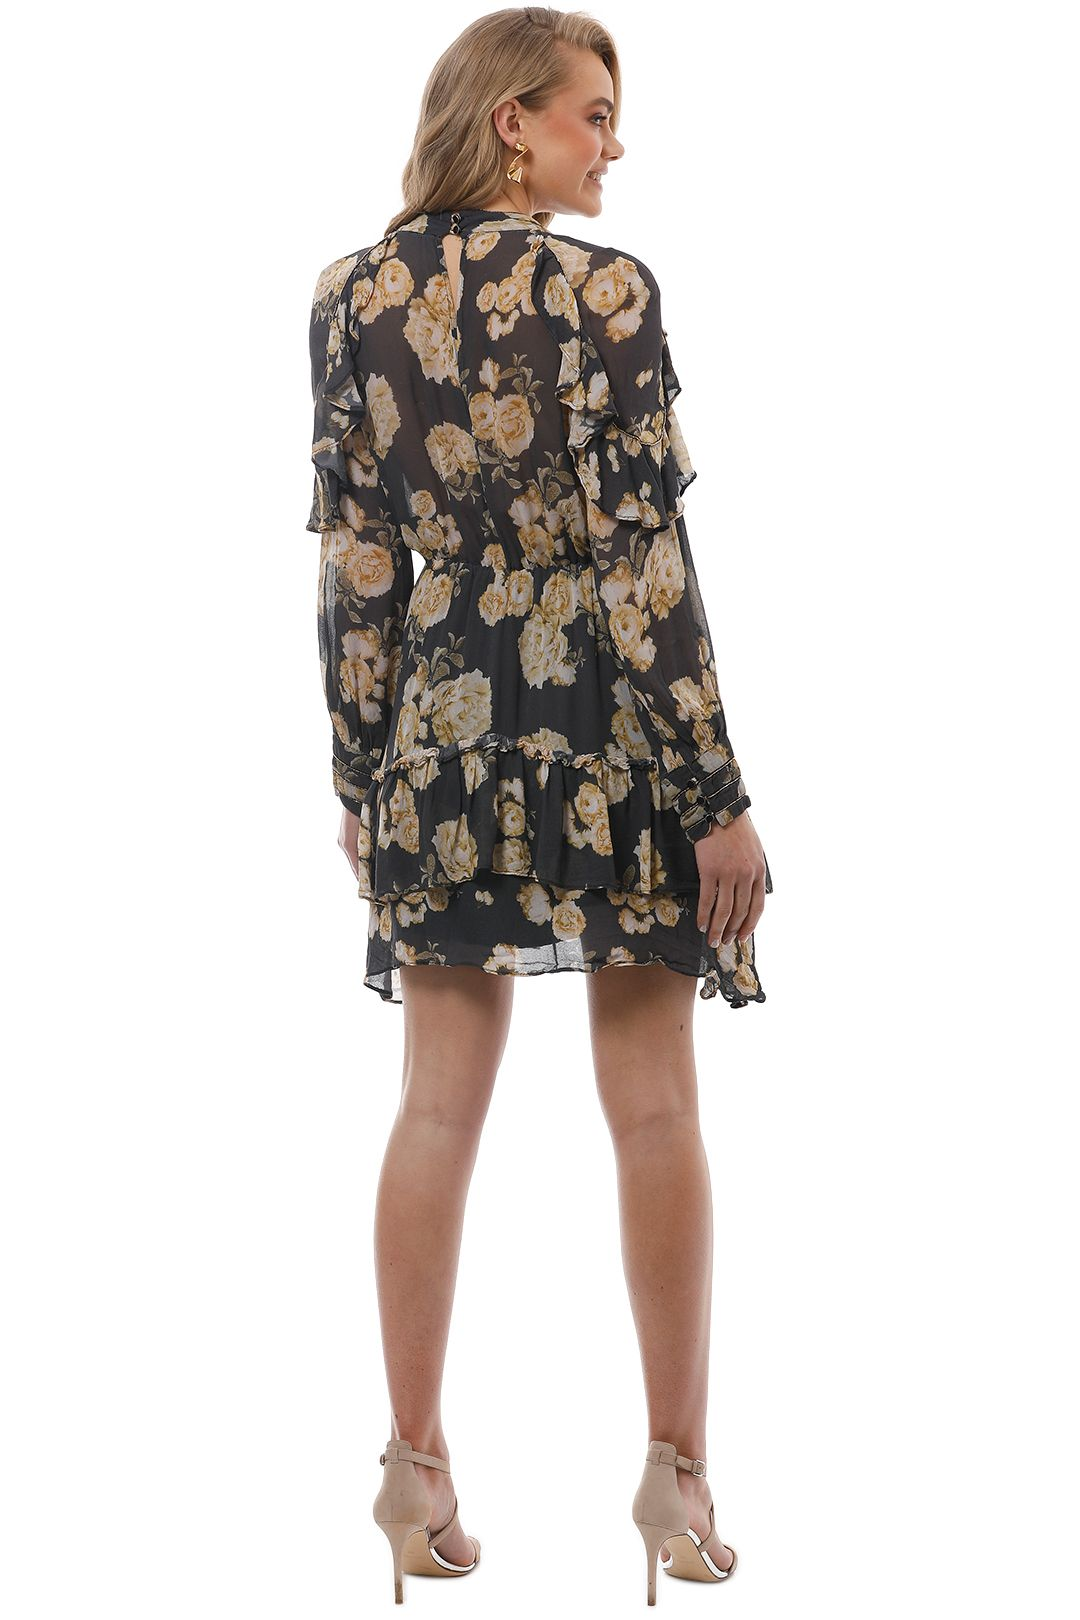 Talulah - In The Mix Mini Dress - Yellow Floral - Back